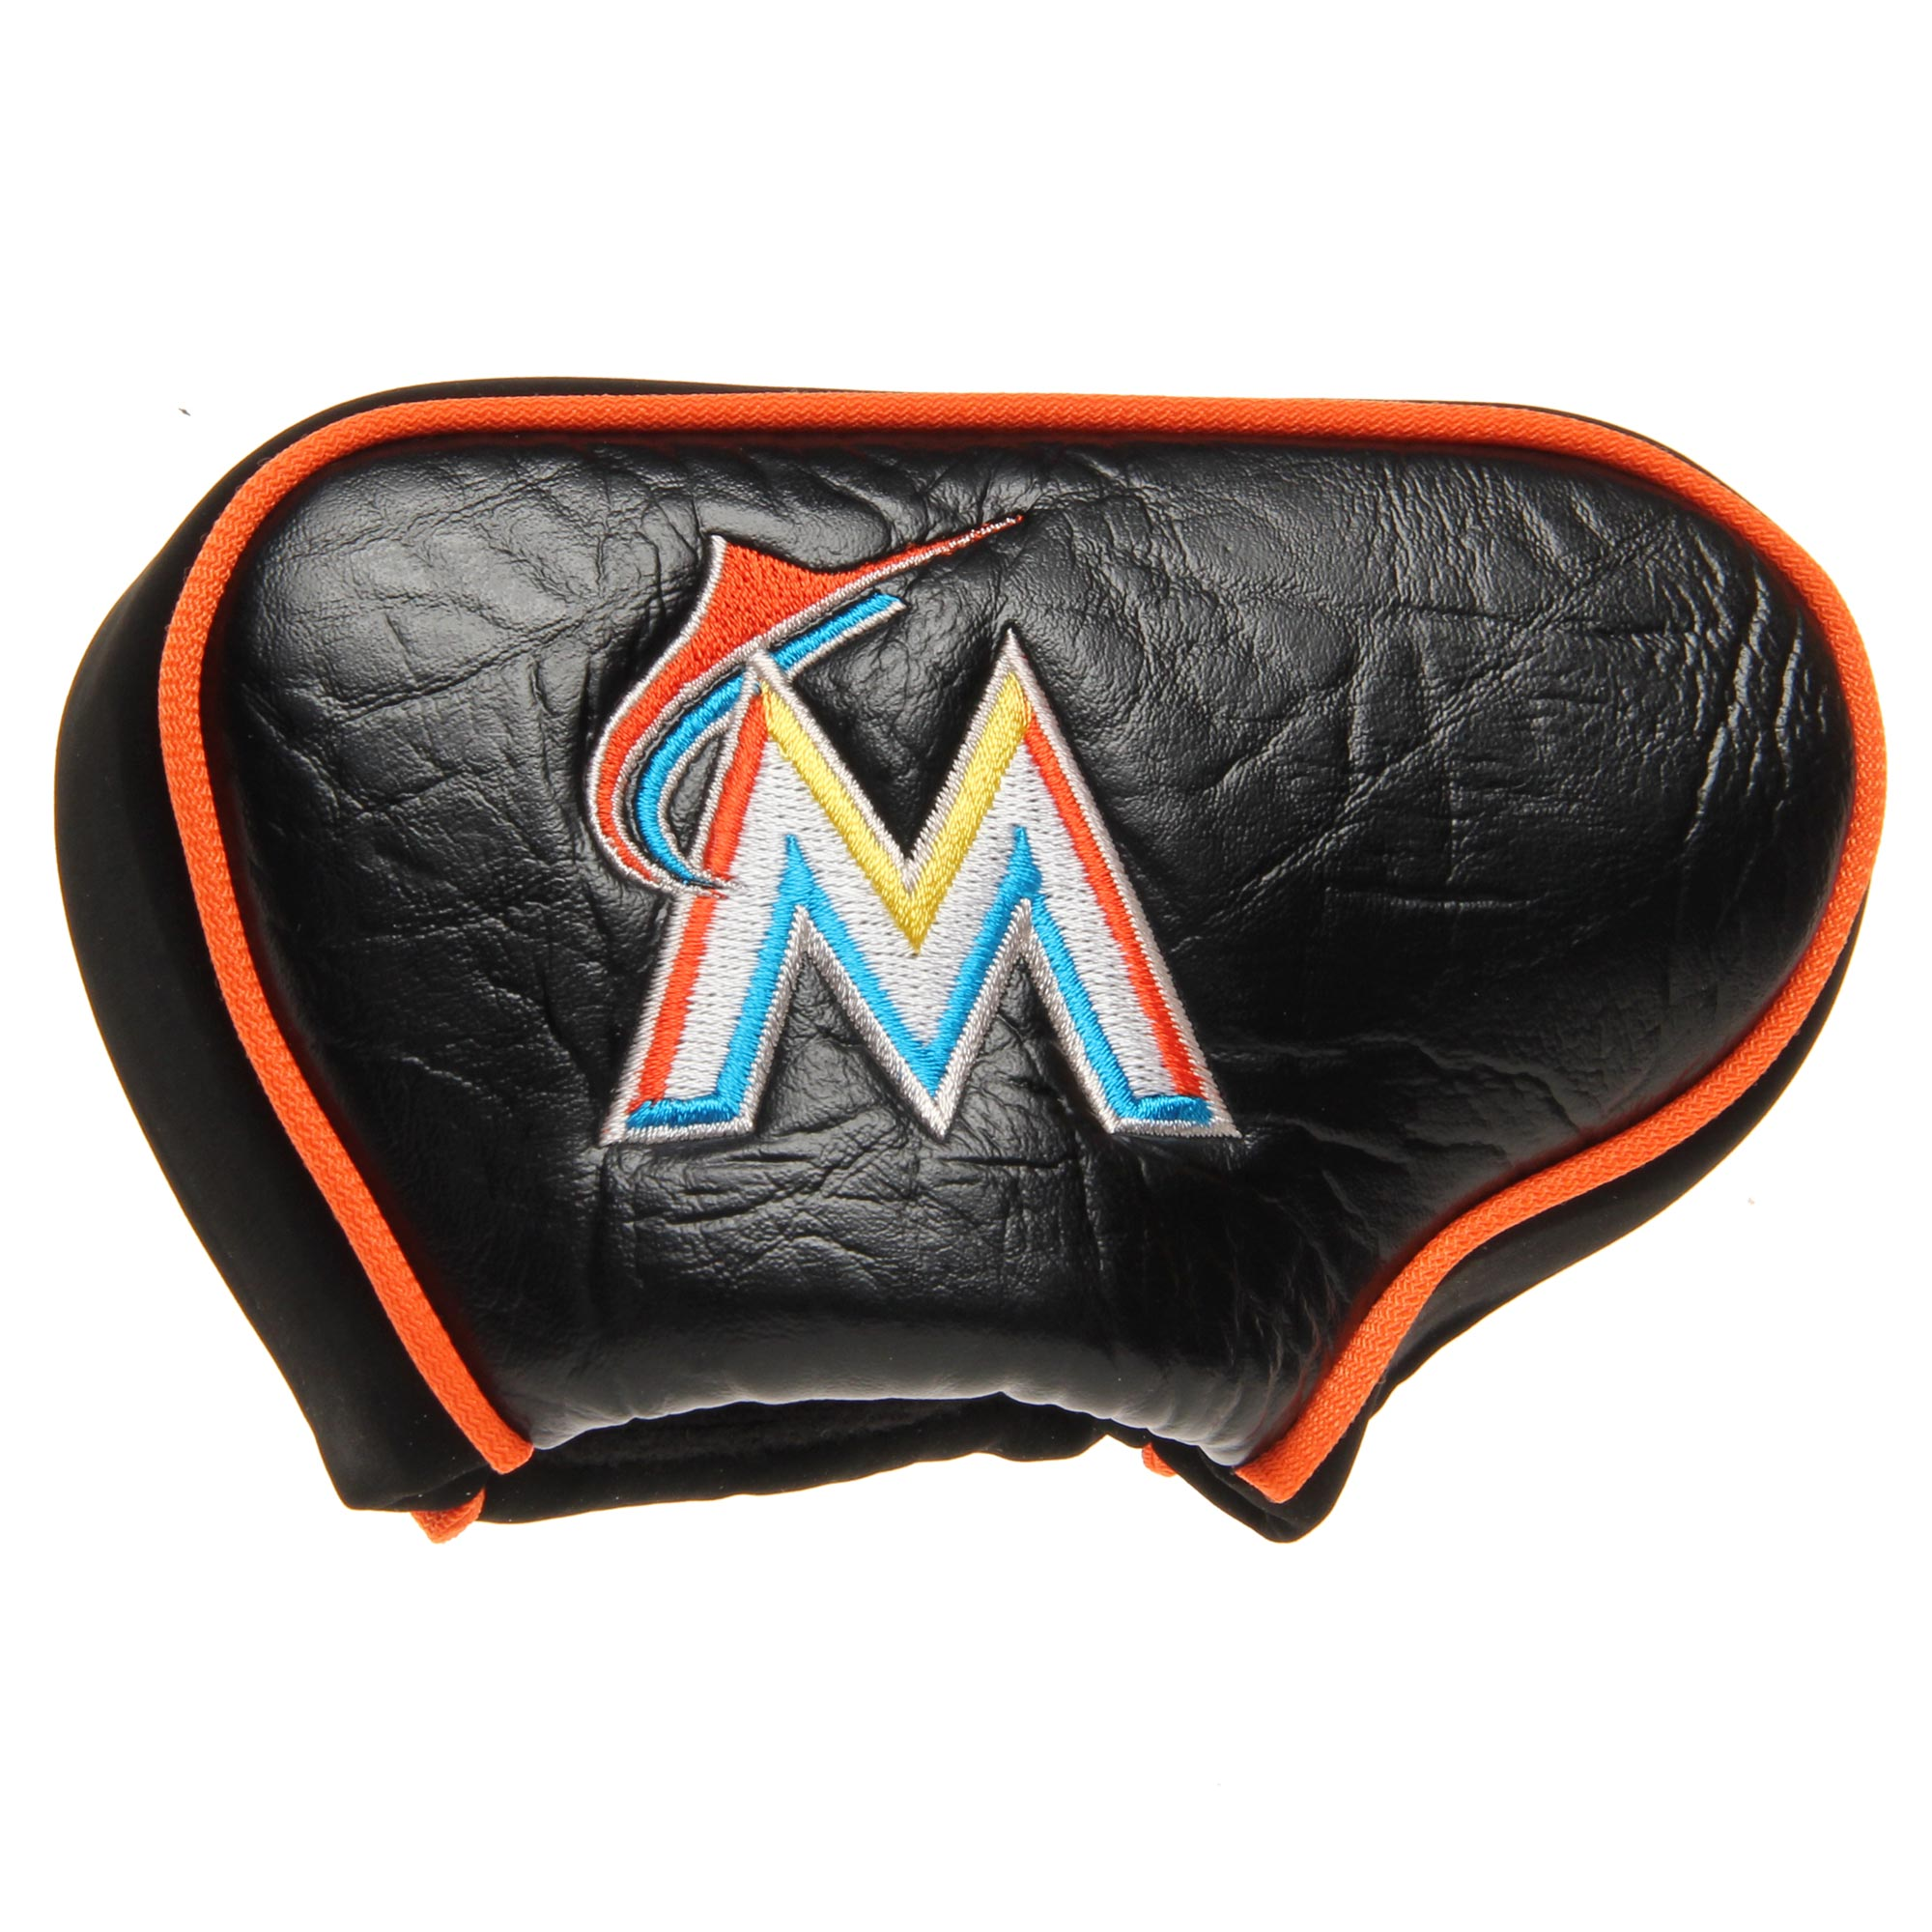 Miami Marlins Golf Blade Putter Cover - No Size